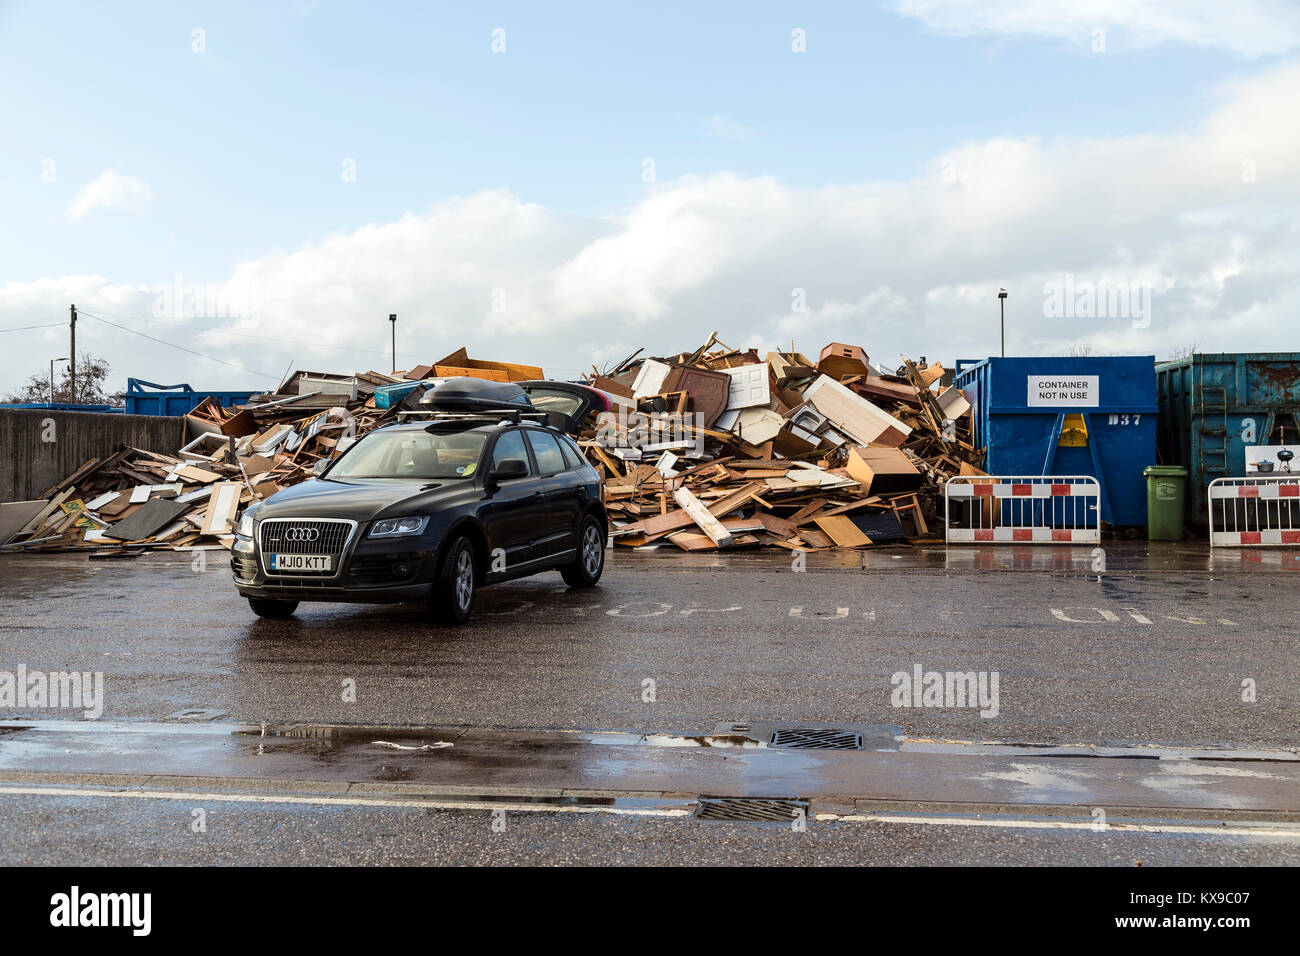 recycling centre,squander, fritter away, misspend, misuse, spend recklessly, throw away, lavish, be wasteful - Stock Image